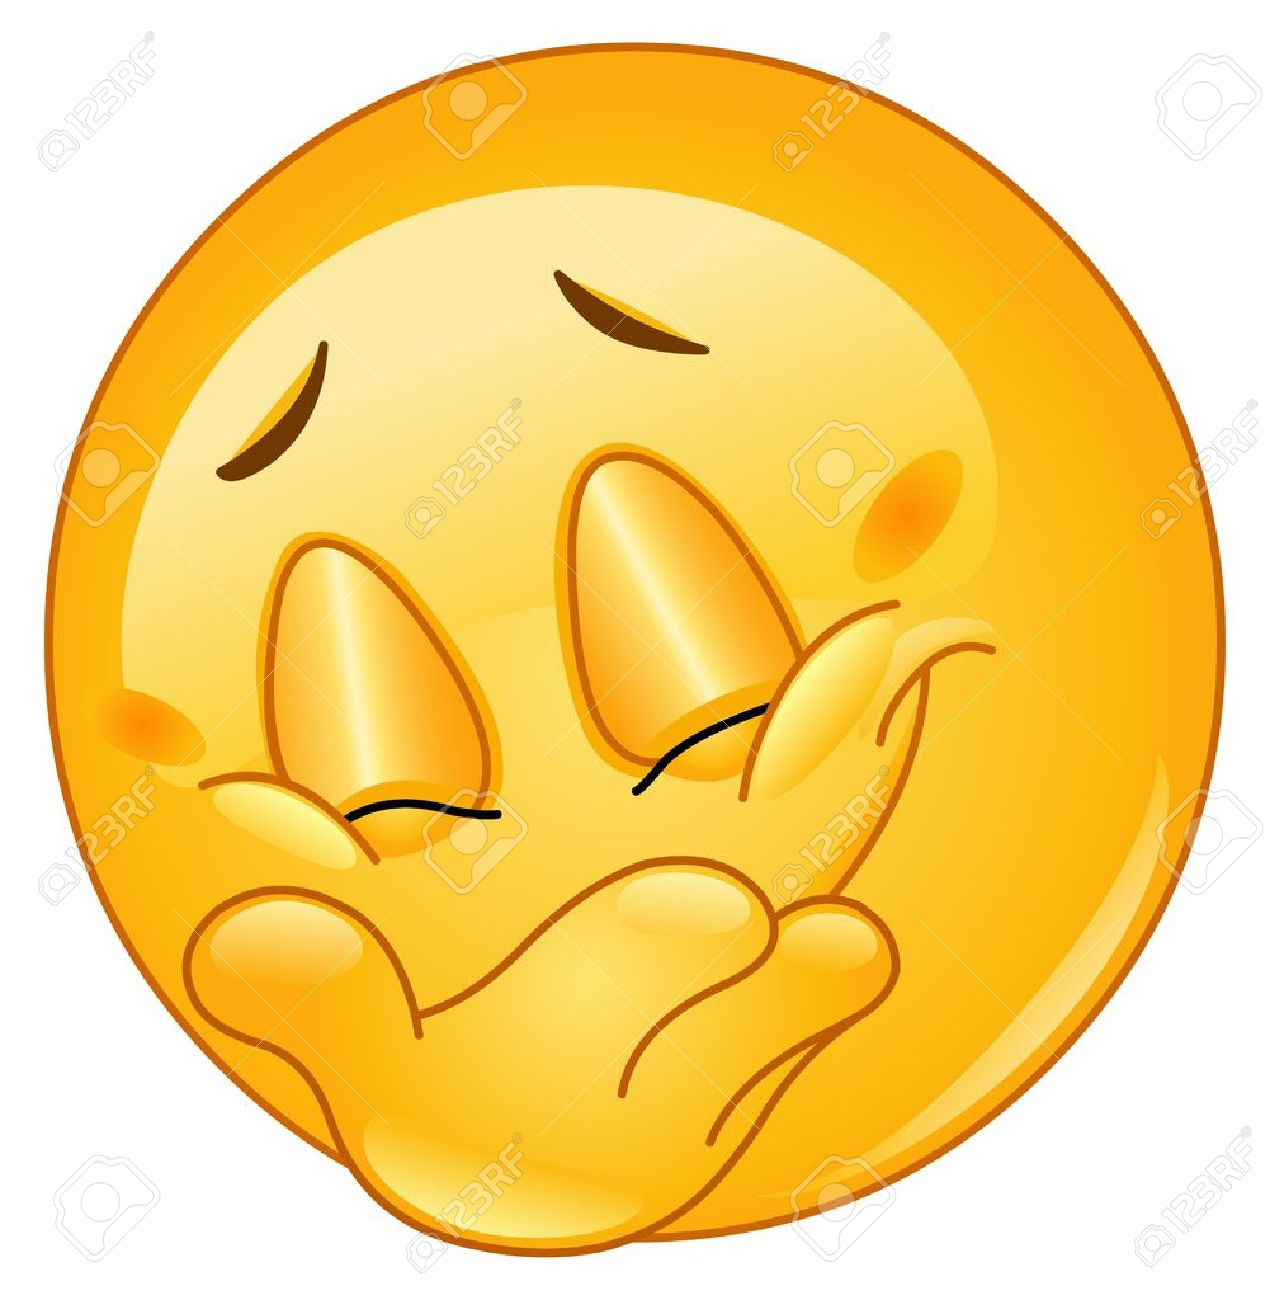 http://previews.123rf.com/images/yayayoy/yayayoy1111/yayayoy111100012/11275855-Emoticon-hiding-his-smile-Stock-Vector-smiley-face-cartoon.jpg